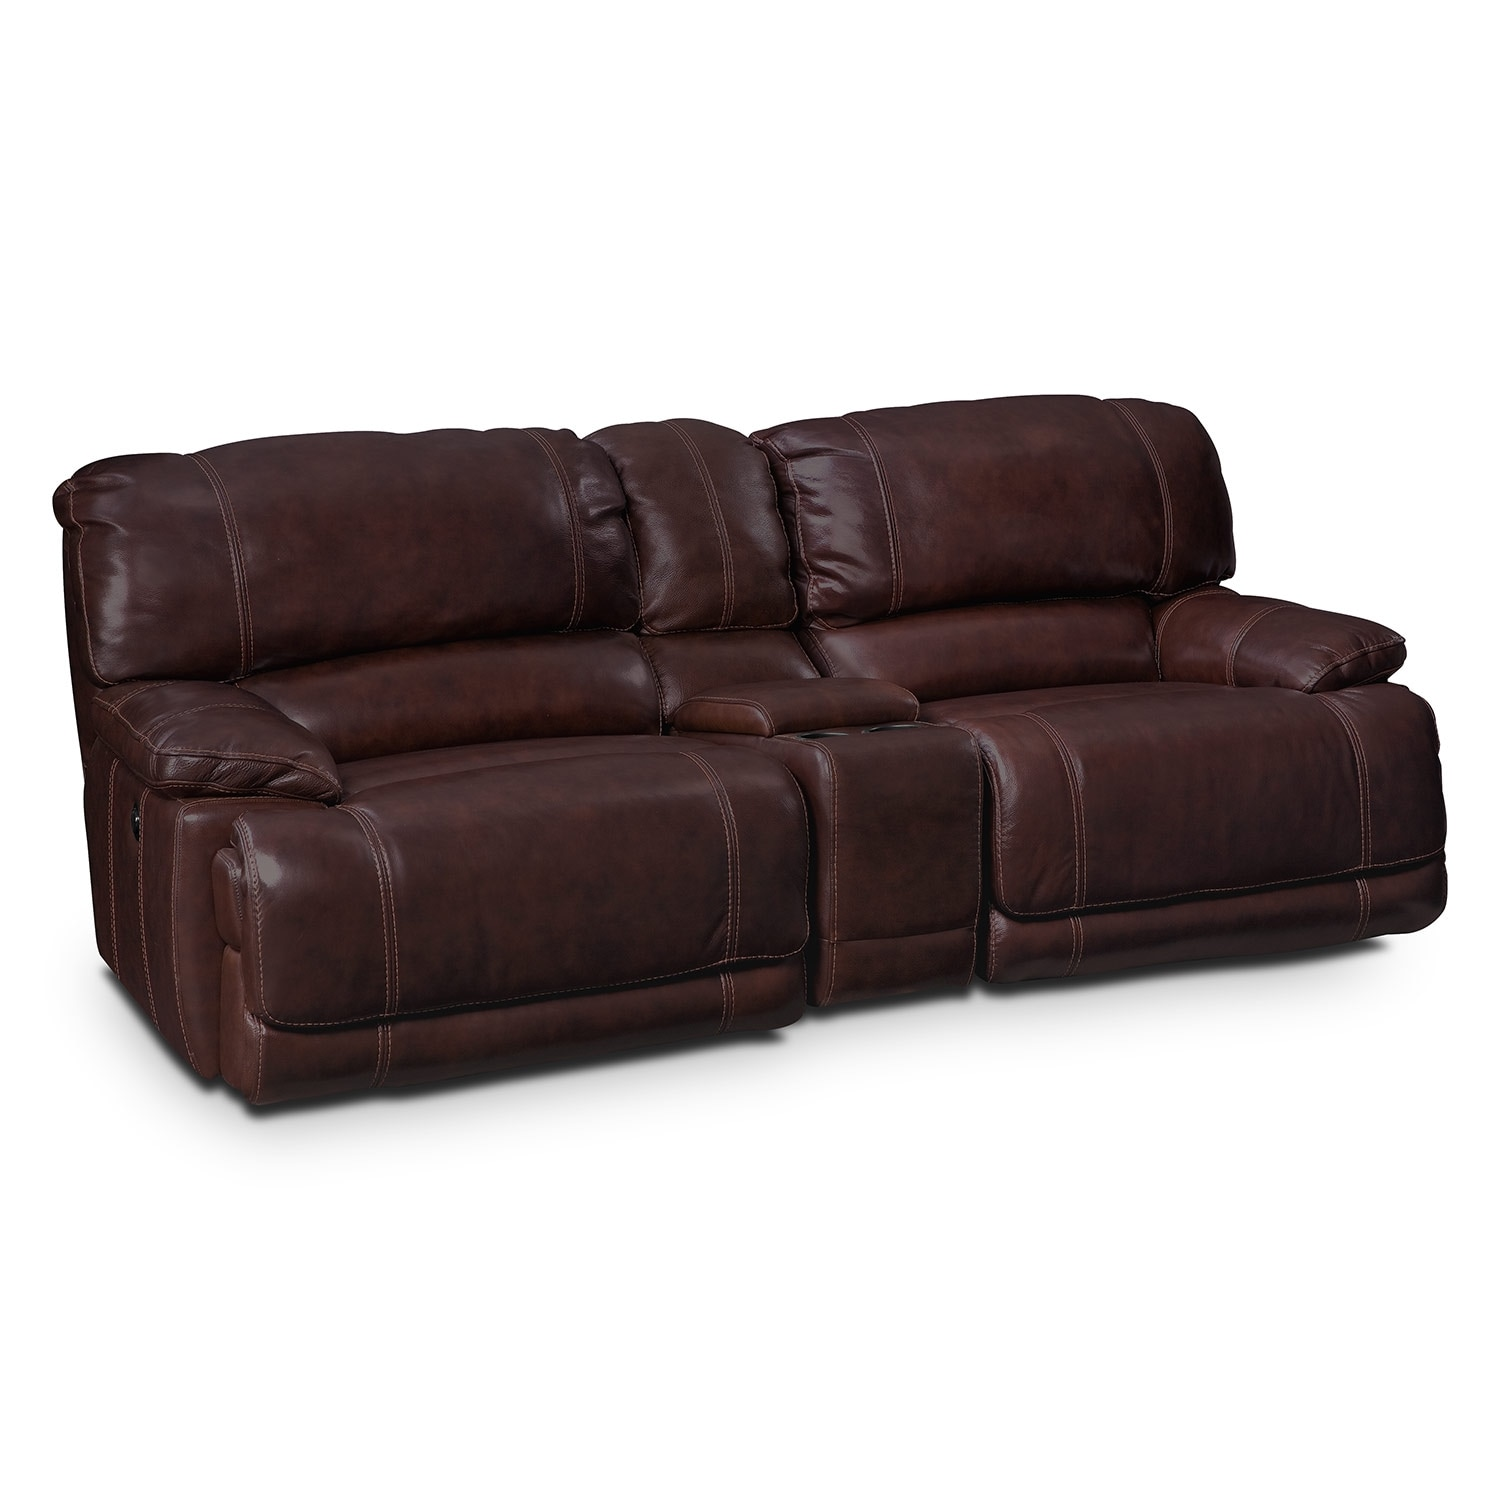 American Signature Furniture St Malo III Leather 3 Pc  : 272242 from americansignaturefurniture.com size 1500 x 1500 jpeg 140kB